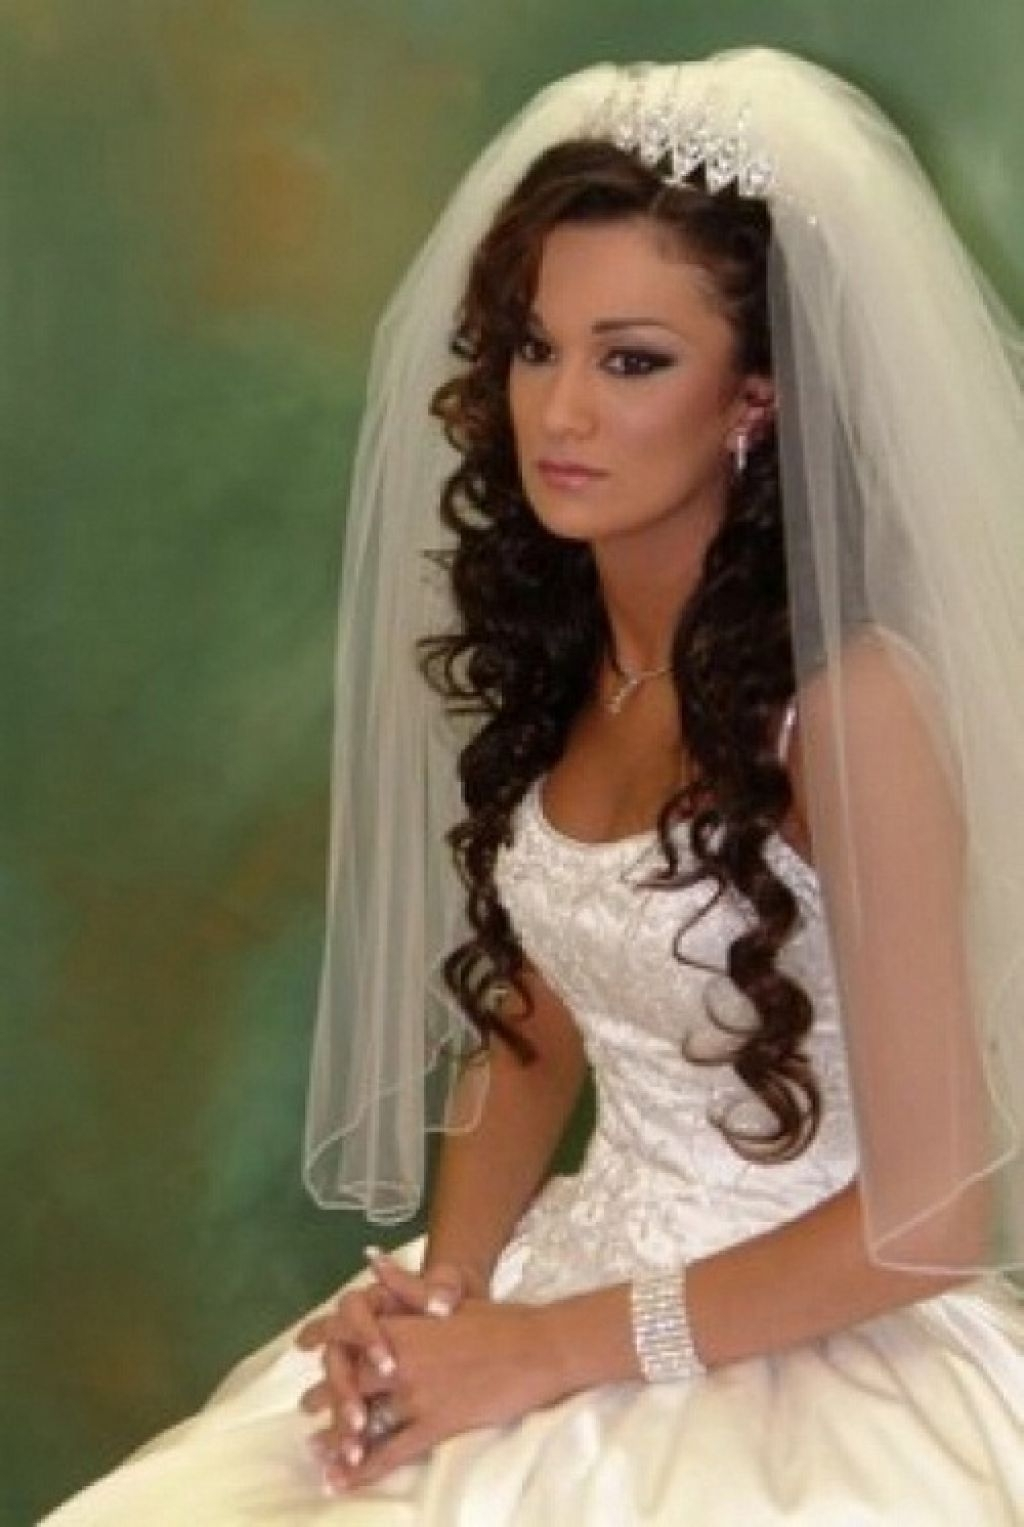 Wedding Hairstyles For Short Hair With Veil – Hairstyle For Women & Man Within Most Recent Wedding Hairstyles For Long Curly Hair With Veil (View 9 of 15)